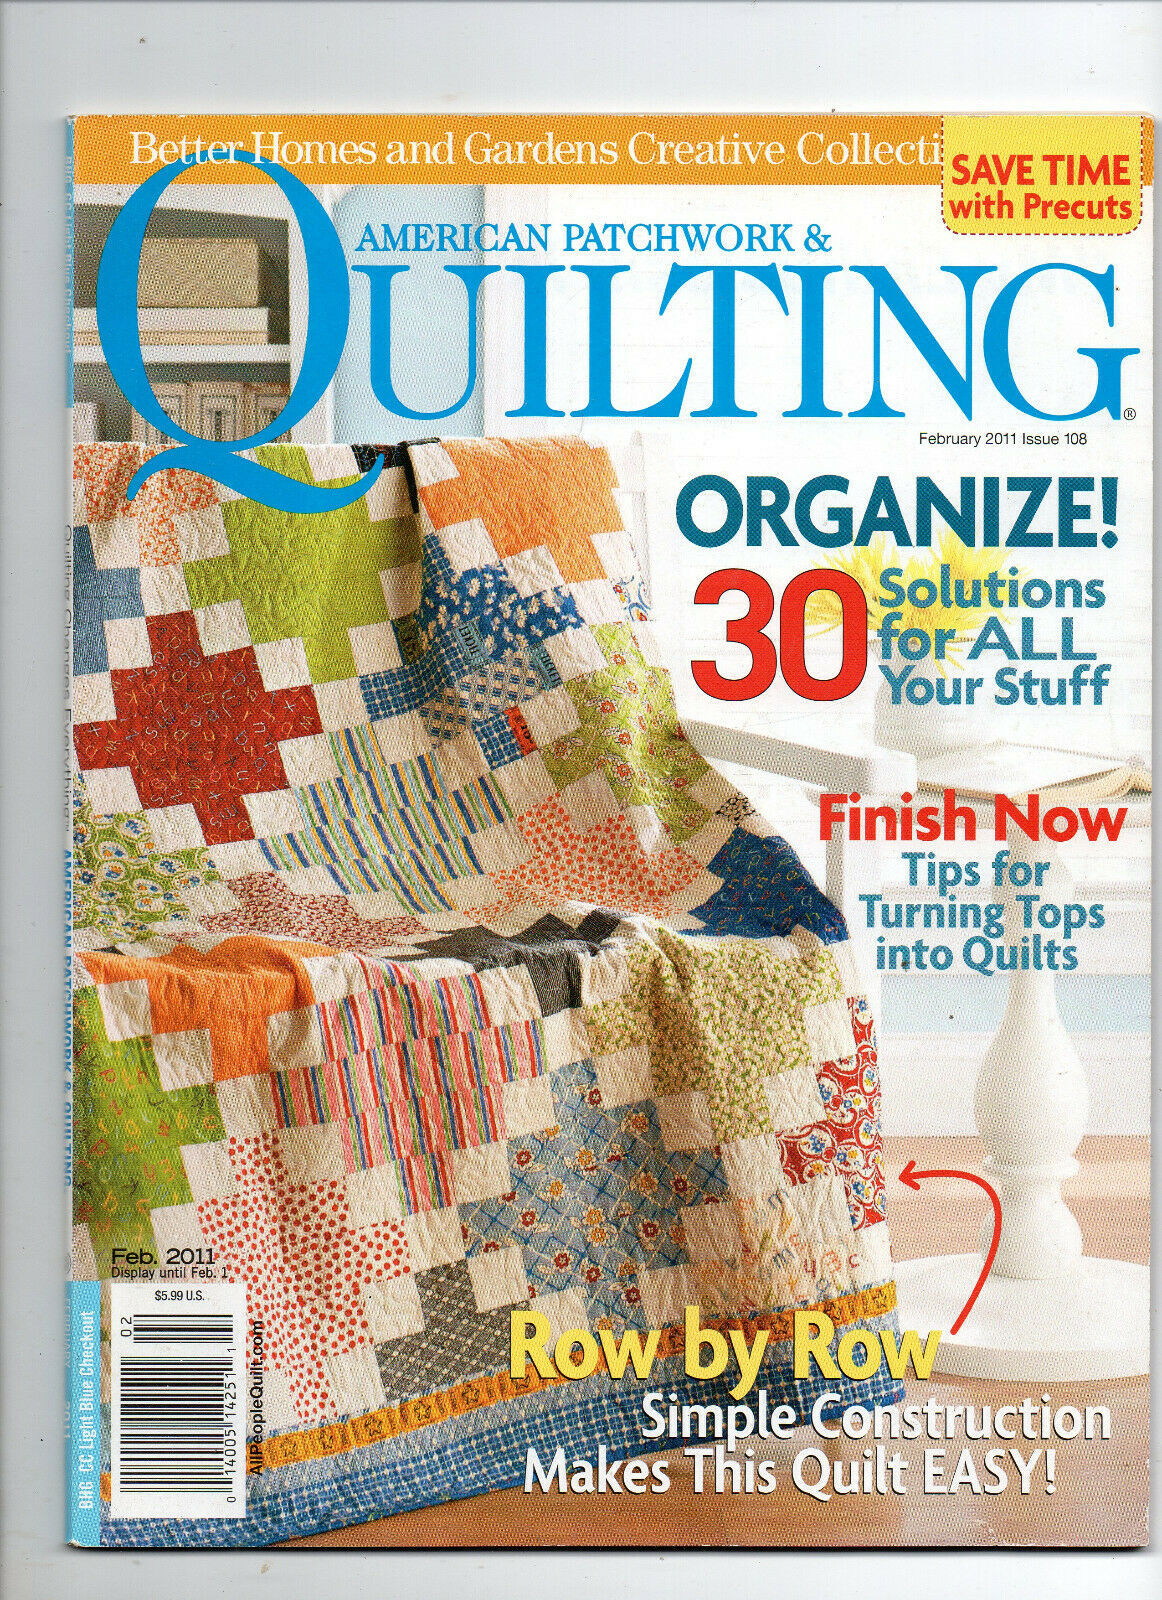 Primary image for Feb 2011/American Patchwork & Quilting/Preowned Craft Magazine